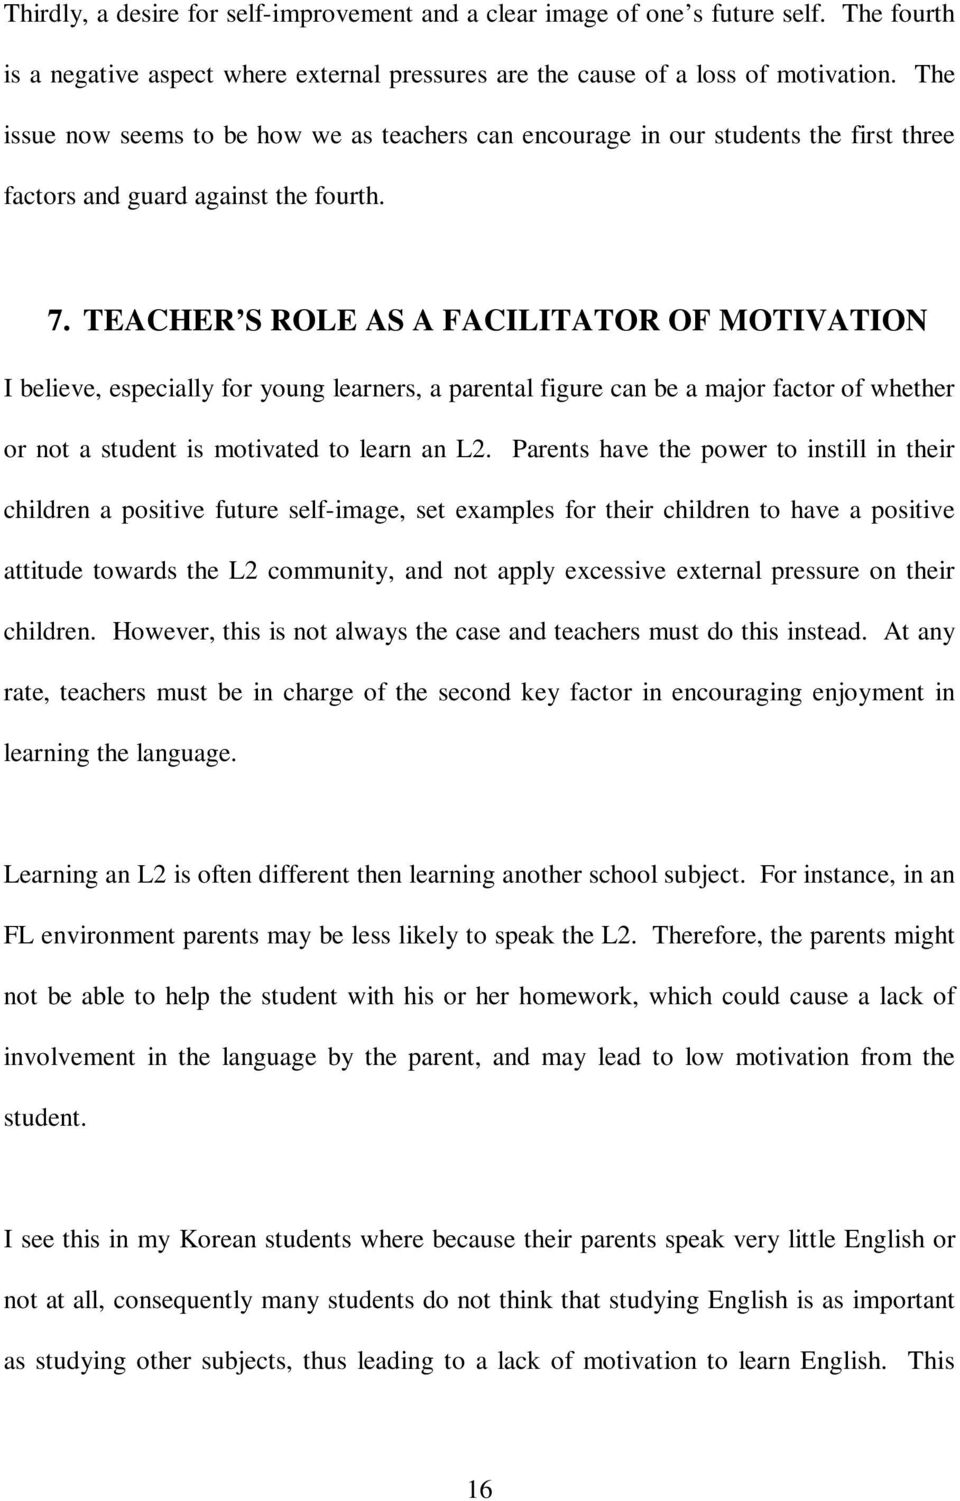 Key Motivational Factors and How Teachers Can Encourage